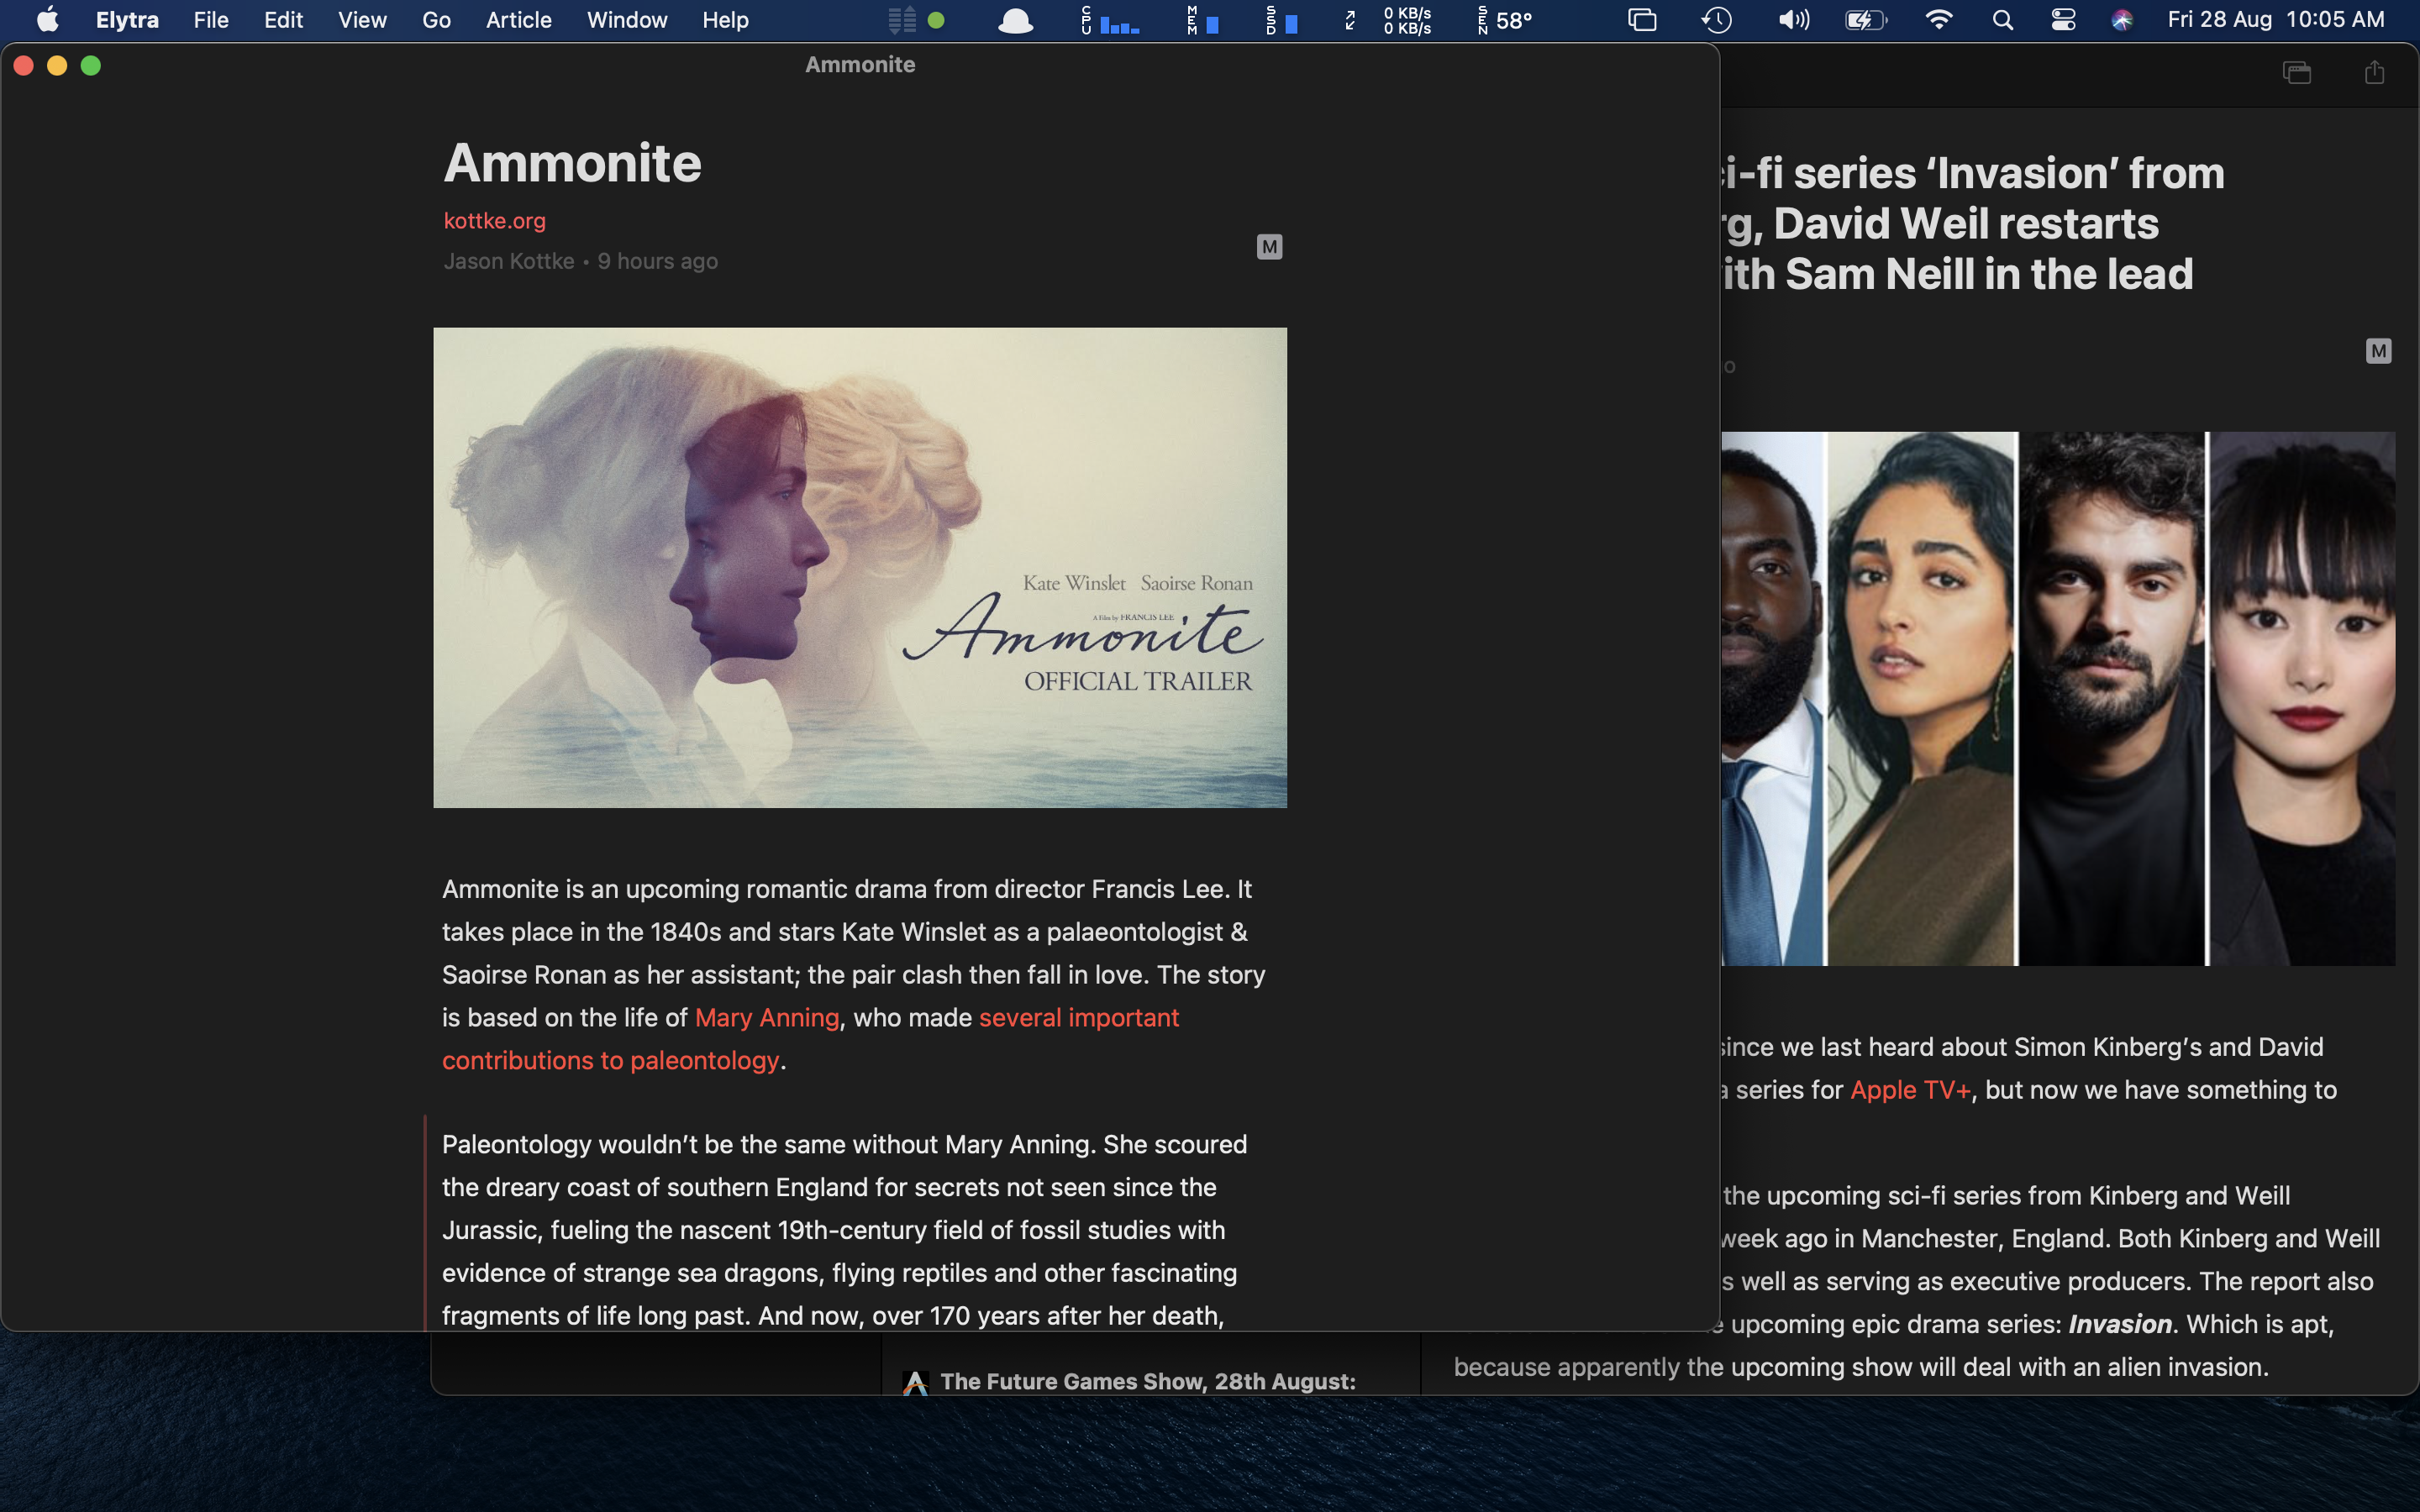 Elytra on Big Sur will also bring Multiwindow support similar to the Web App for opening Articles in separate windows.